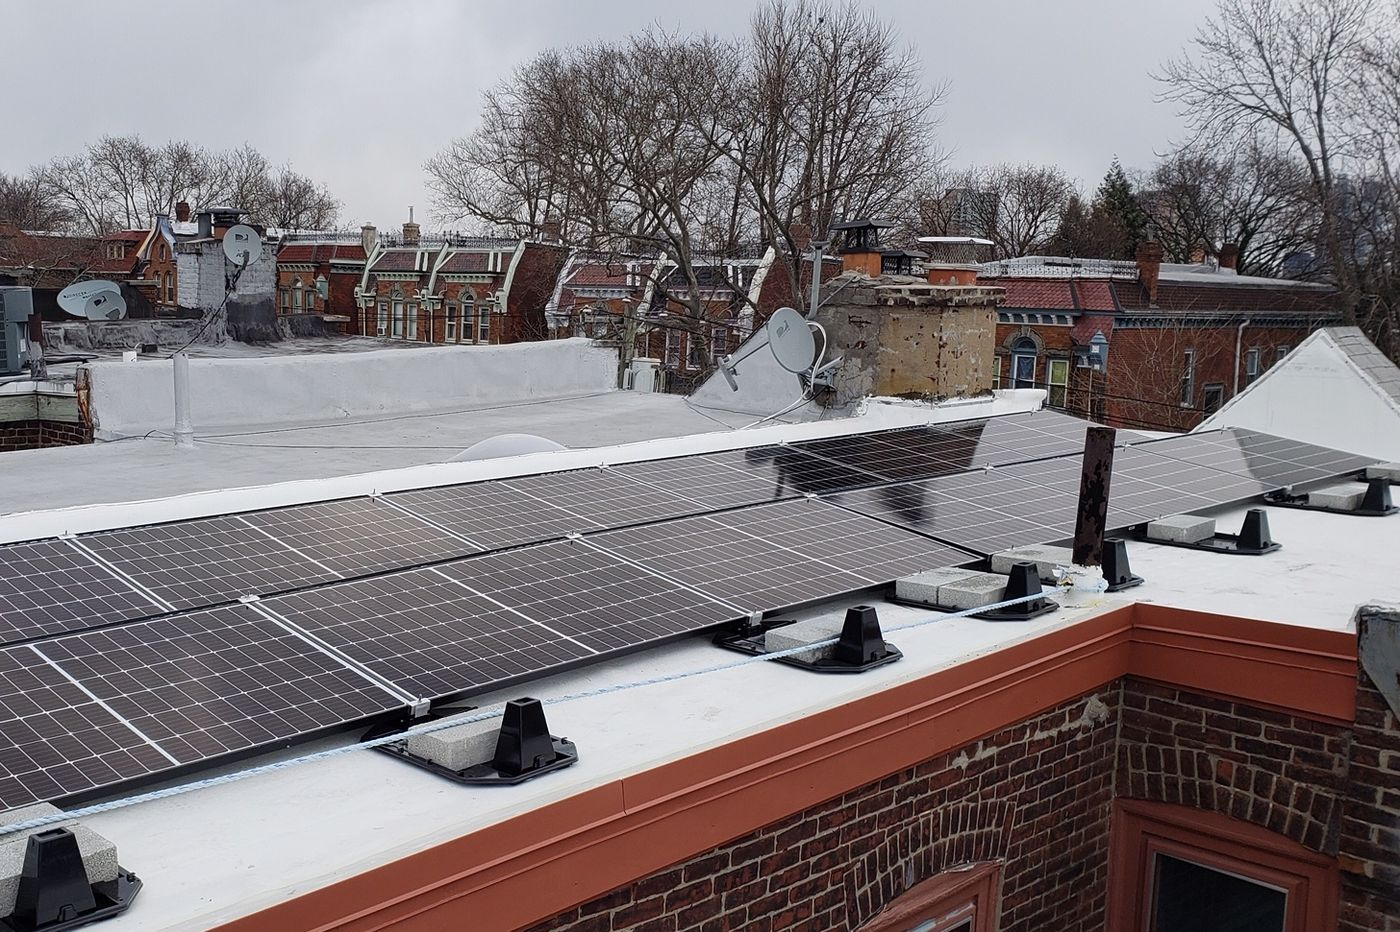 Want solar panels for your Philadelphia home? City reopens program to help you get them